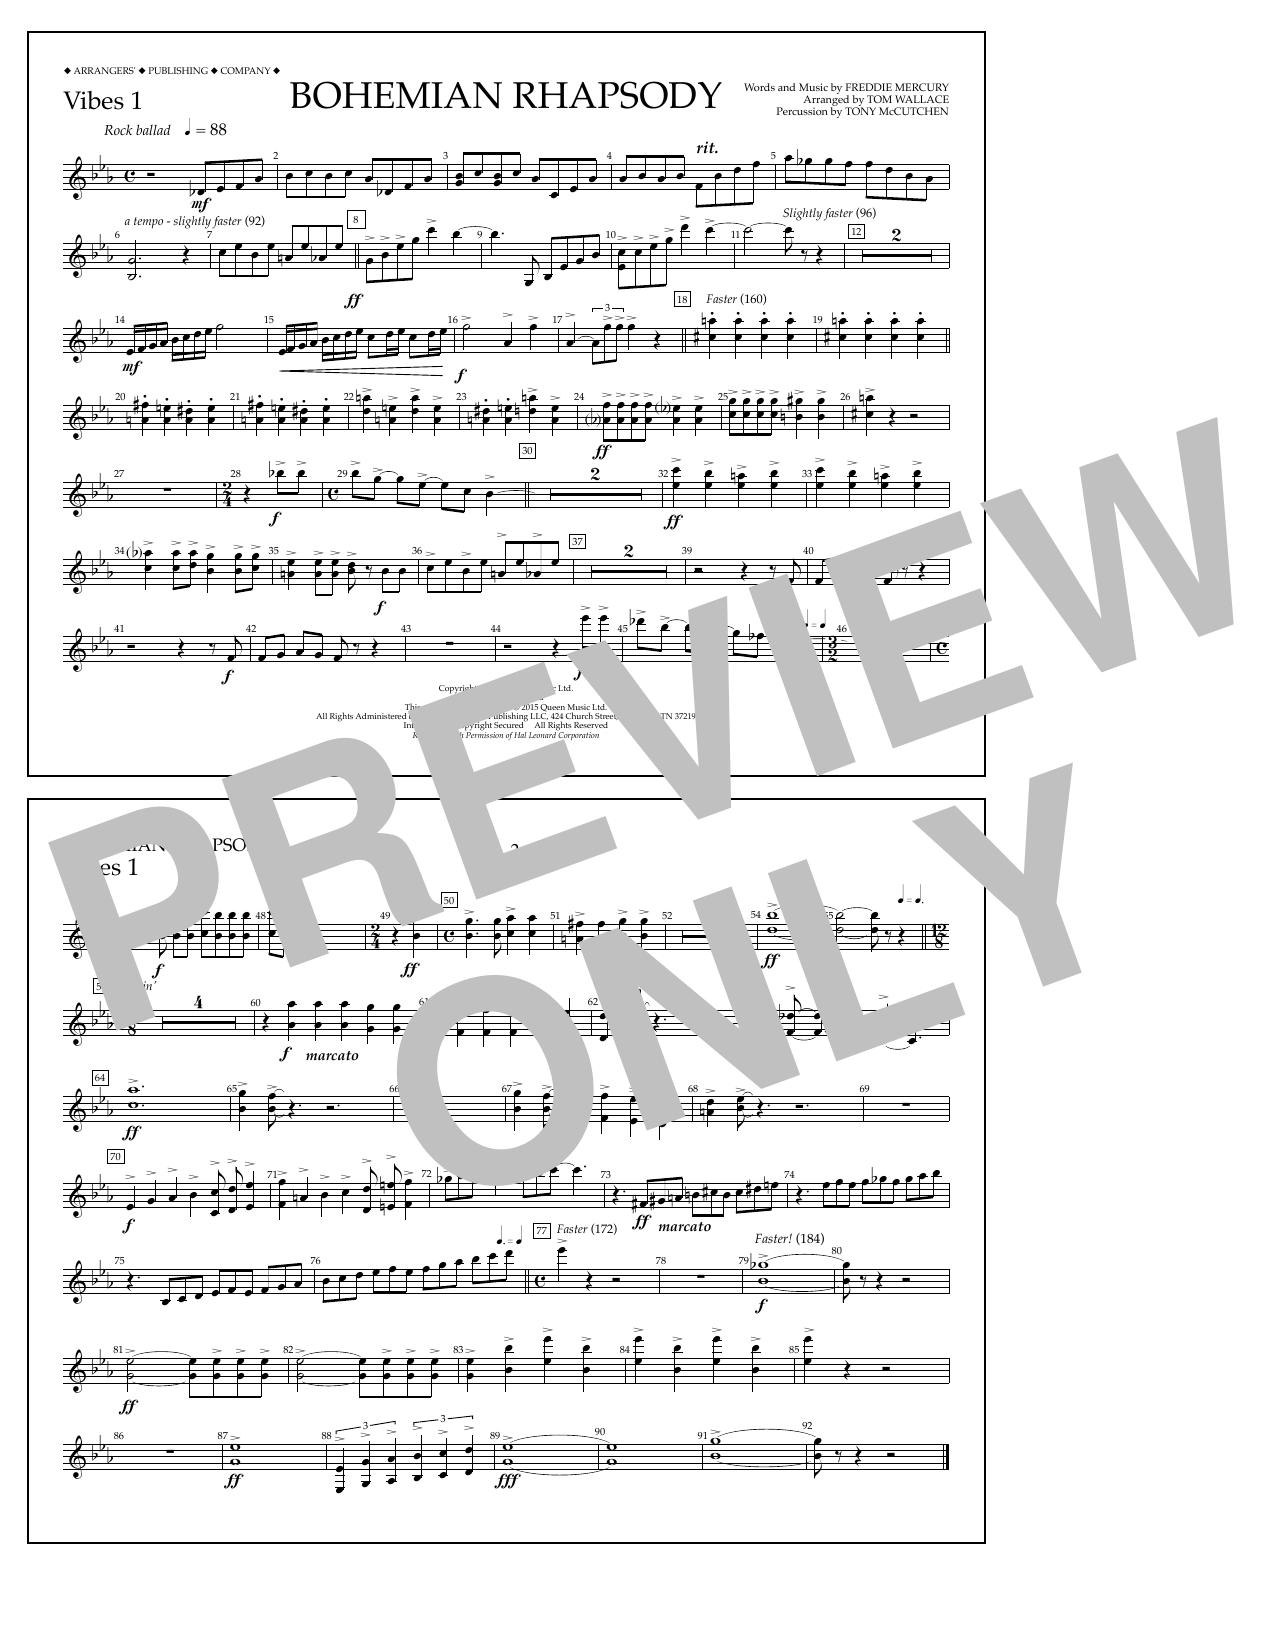 Tom Wallace Bohemian Rhapsody - Vibes 1 sheet music notes and chords. Download Printable PDF.